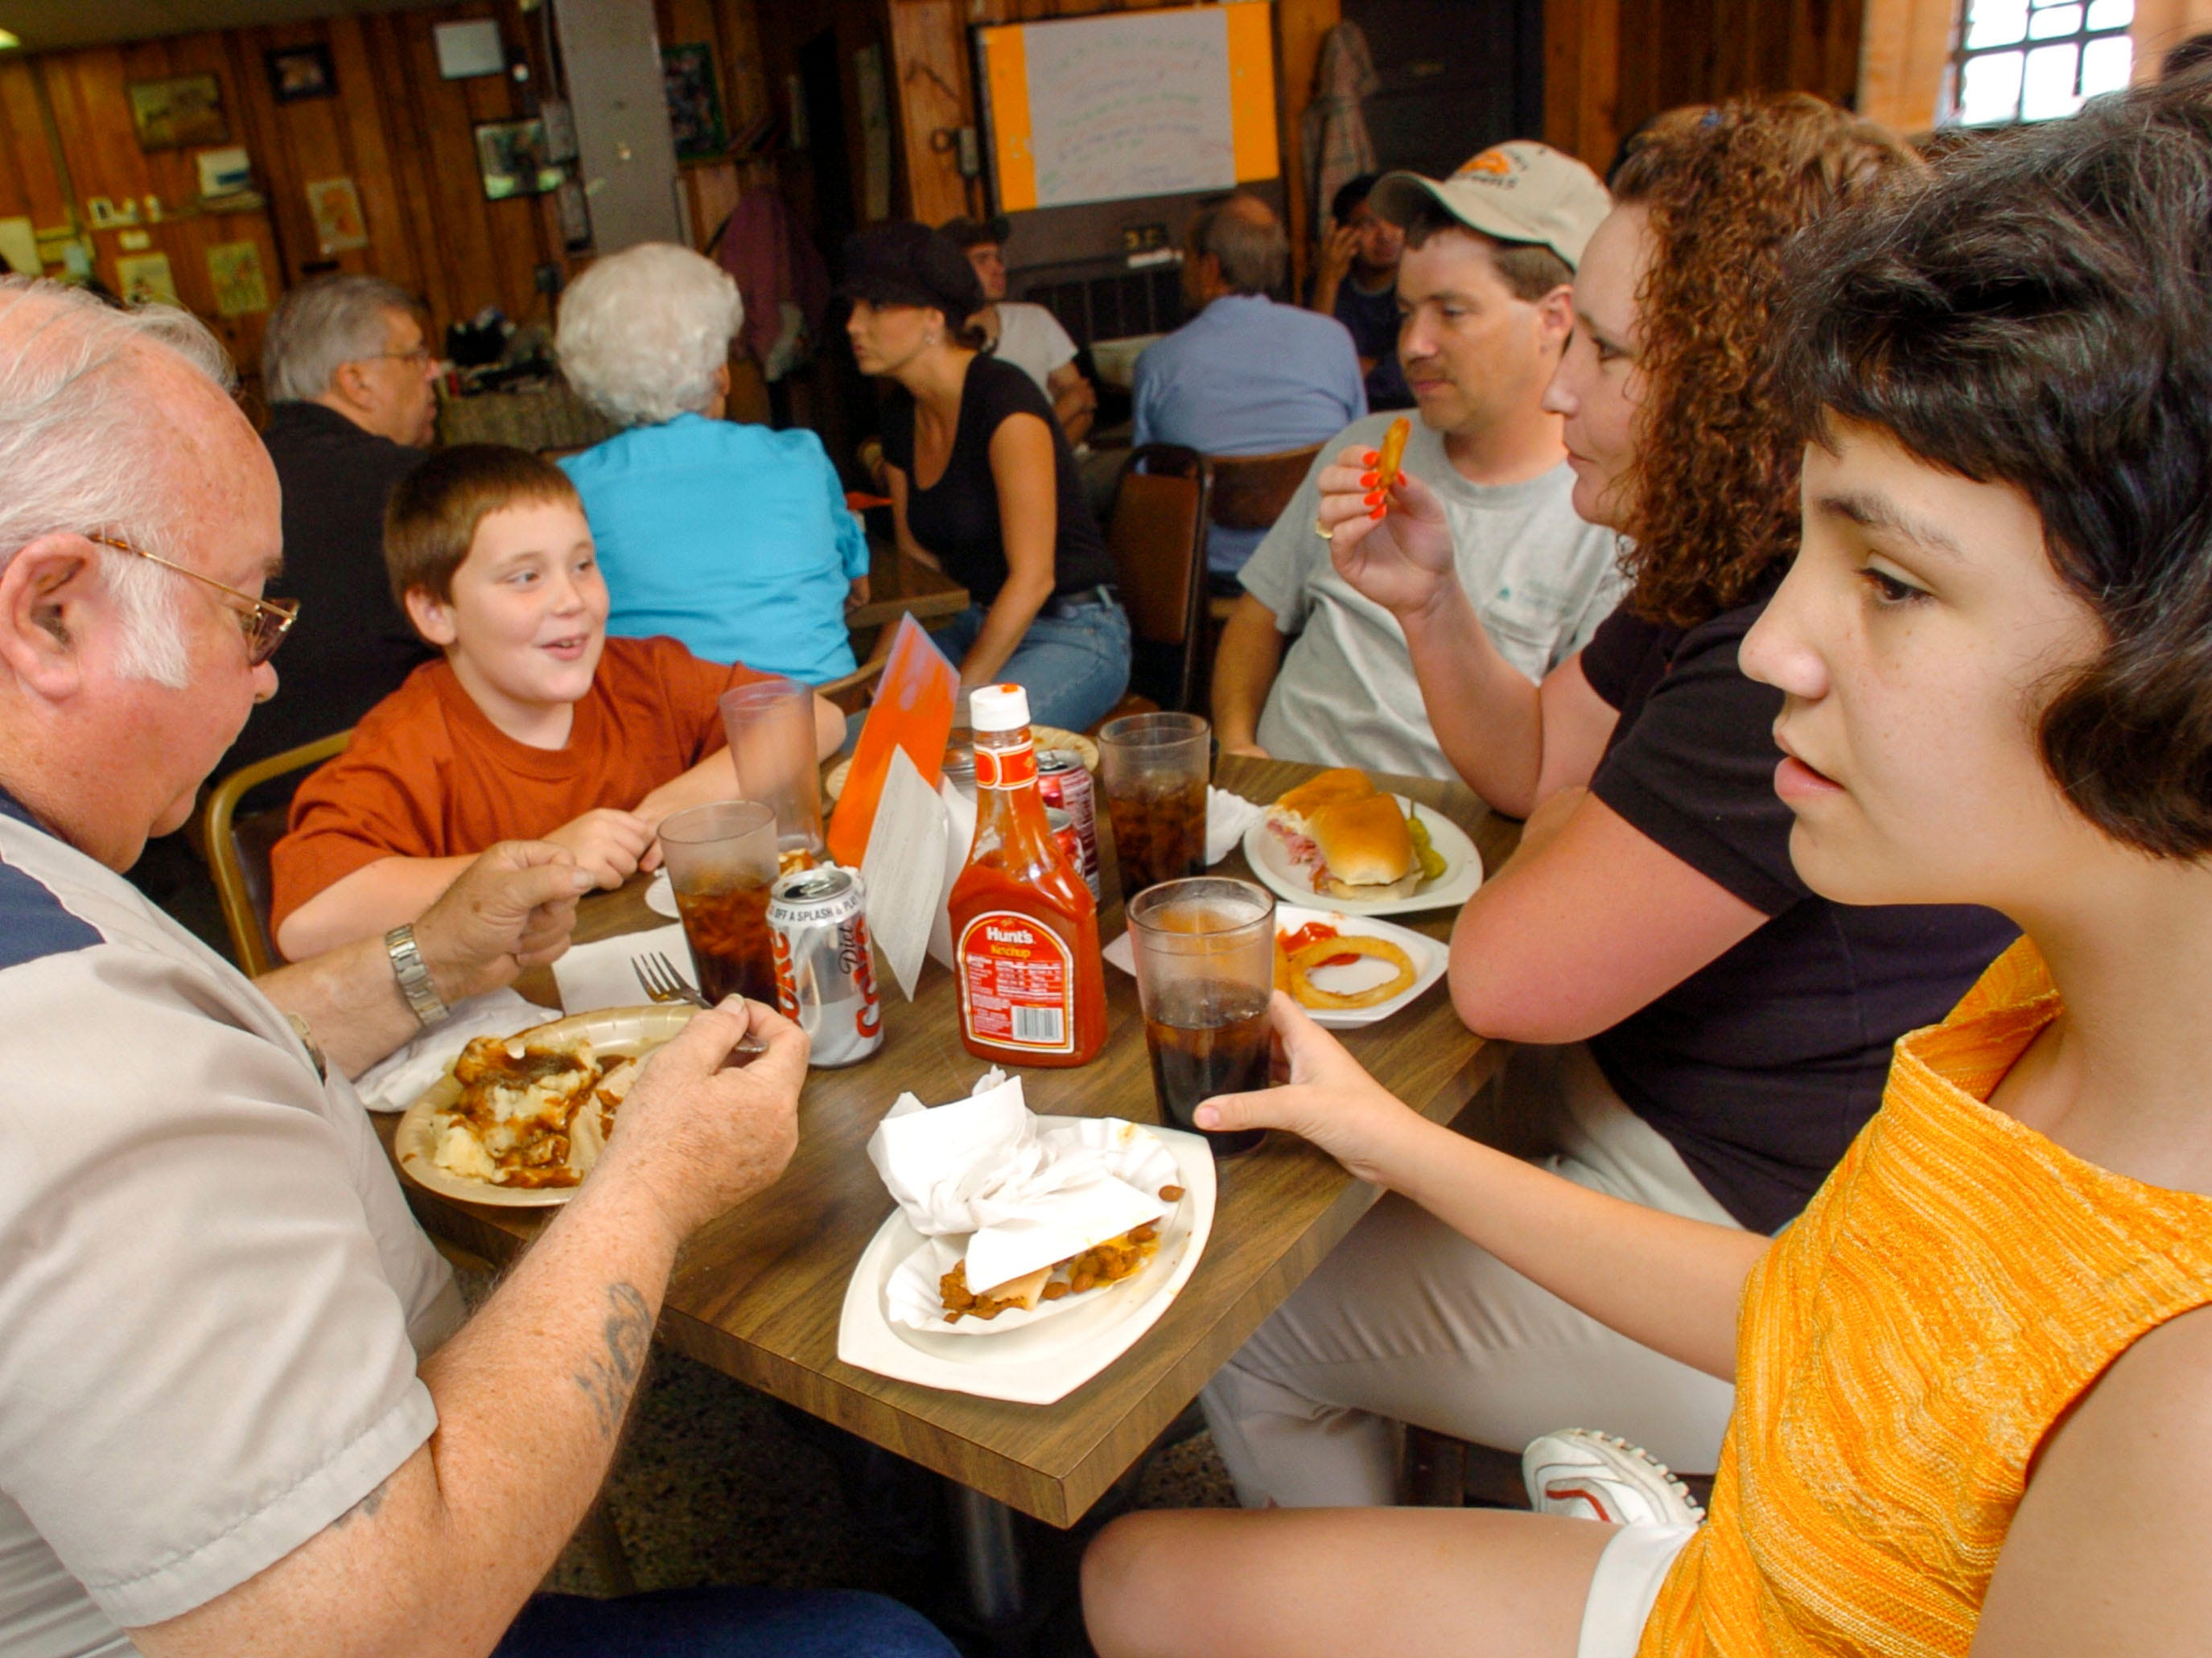 John Ford, left, has lunch with Ronnie and Heather Collins, center, and their children Nicole, 11, right, and Brandon, 9, at the Glenwood Sandwich Shop Thursday, June 3, 2004 in the Fourth and Gill neighborhood. The restaurant will close it's doors after 61 years of business.